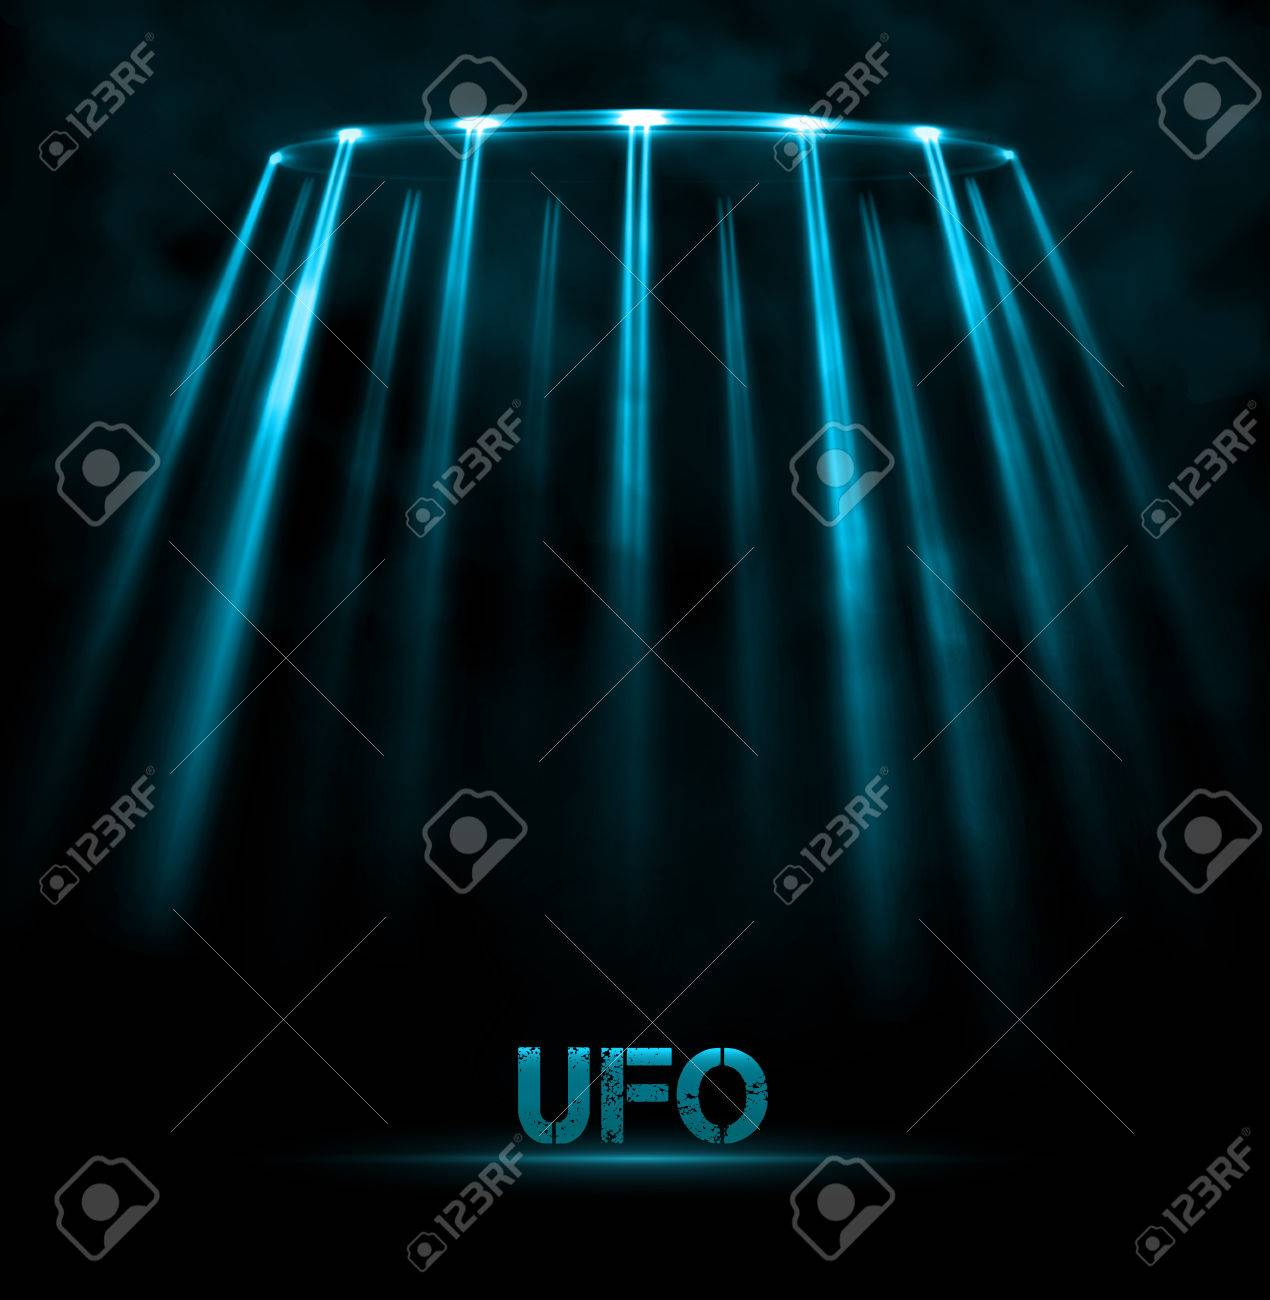 Abstract UFO background Stock Vector - 27704117